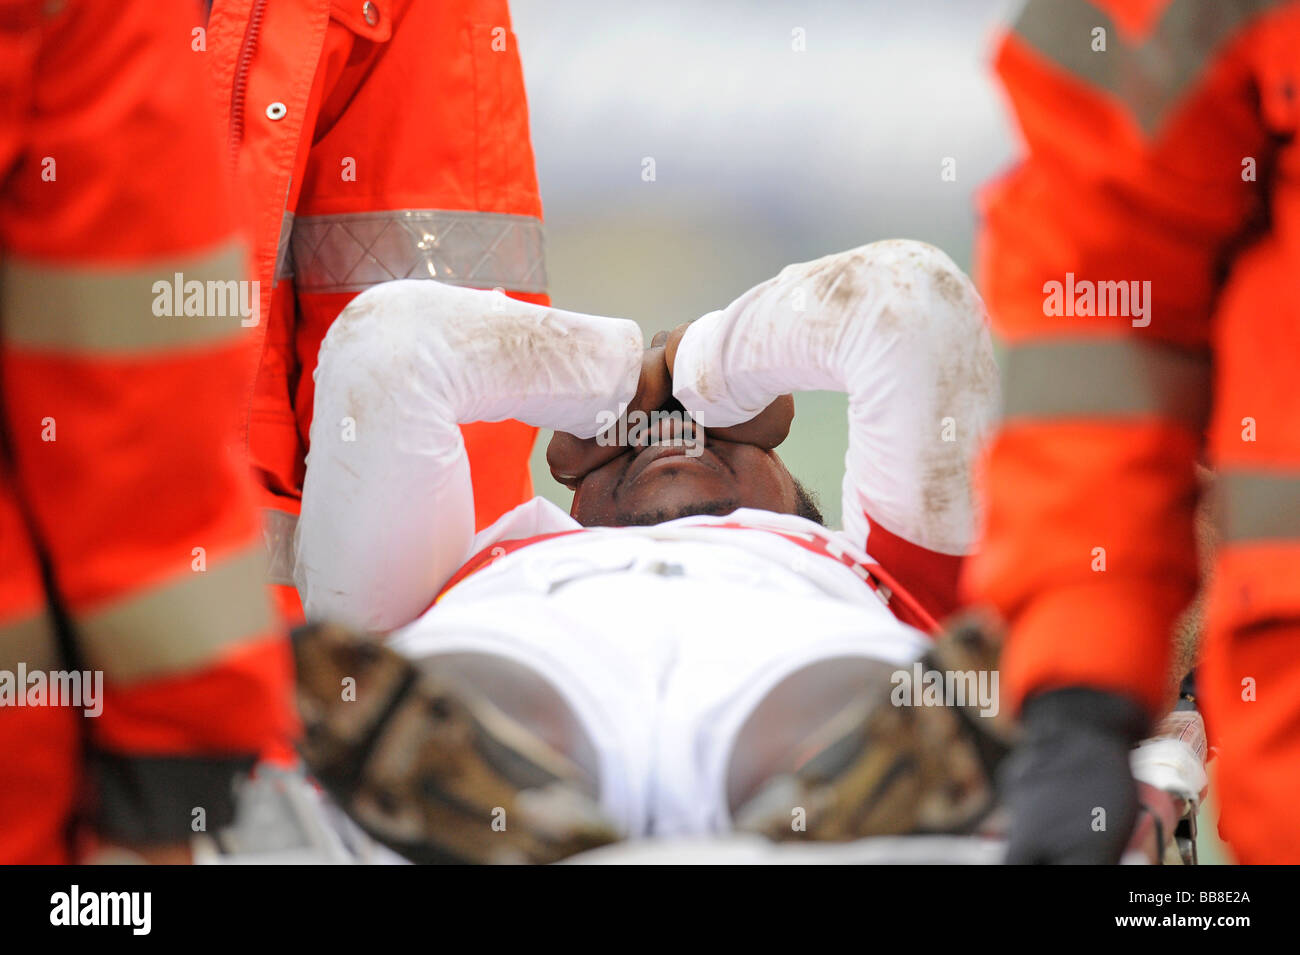 Arthur Boka, football player, VfB Stuttgart, being carried from the field on a stretcher by paramedics - Stock Image